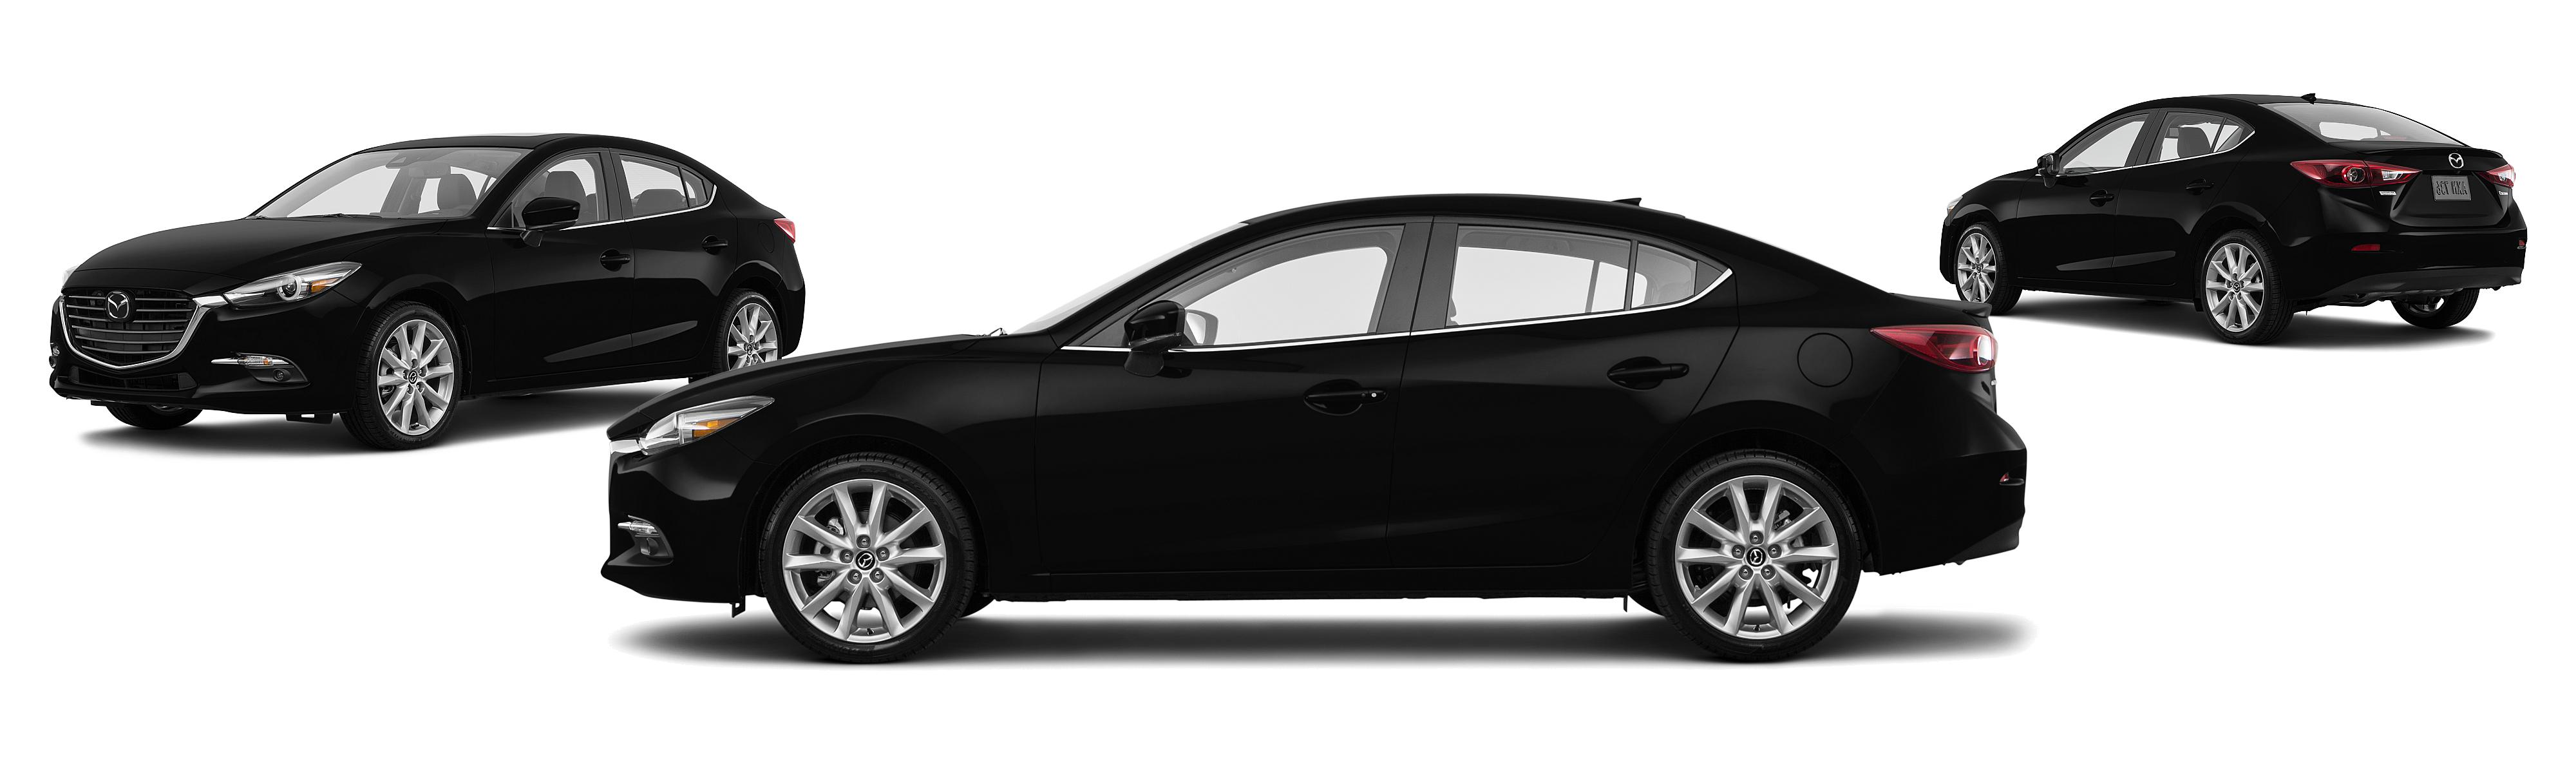 https://www.groovecar.com/stock/images/color/2017/mazda/mazda3/touring-4dr-sedan-6a/2017-mazda-mazda3-touring-4dr-sedan-6a-jet-black-mica-composite-large.jpg